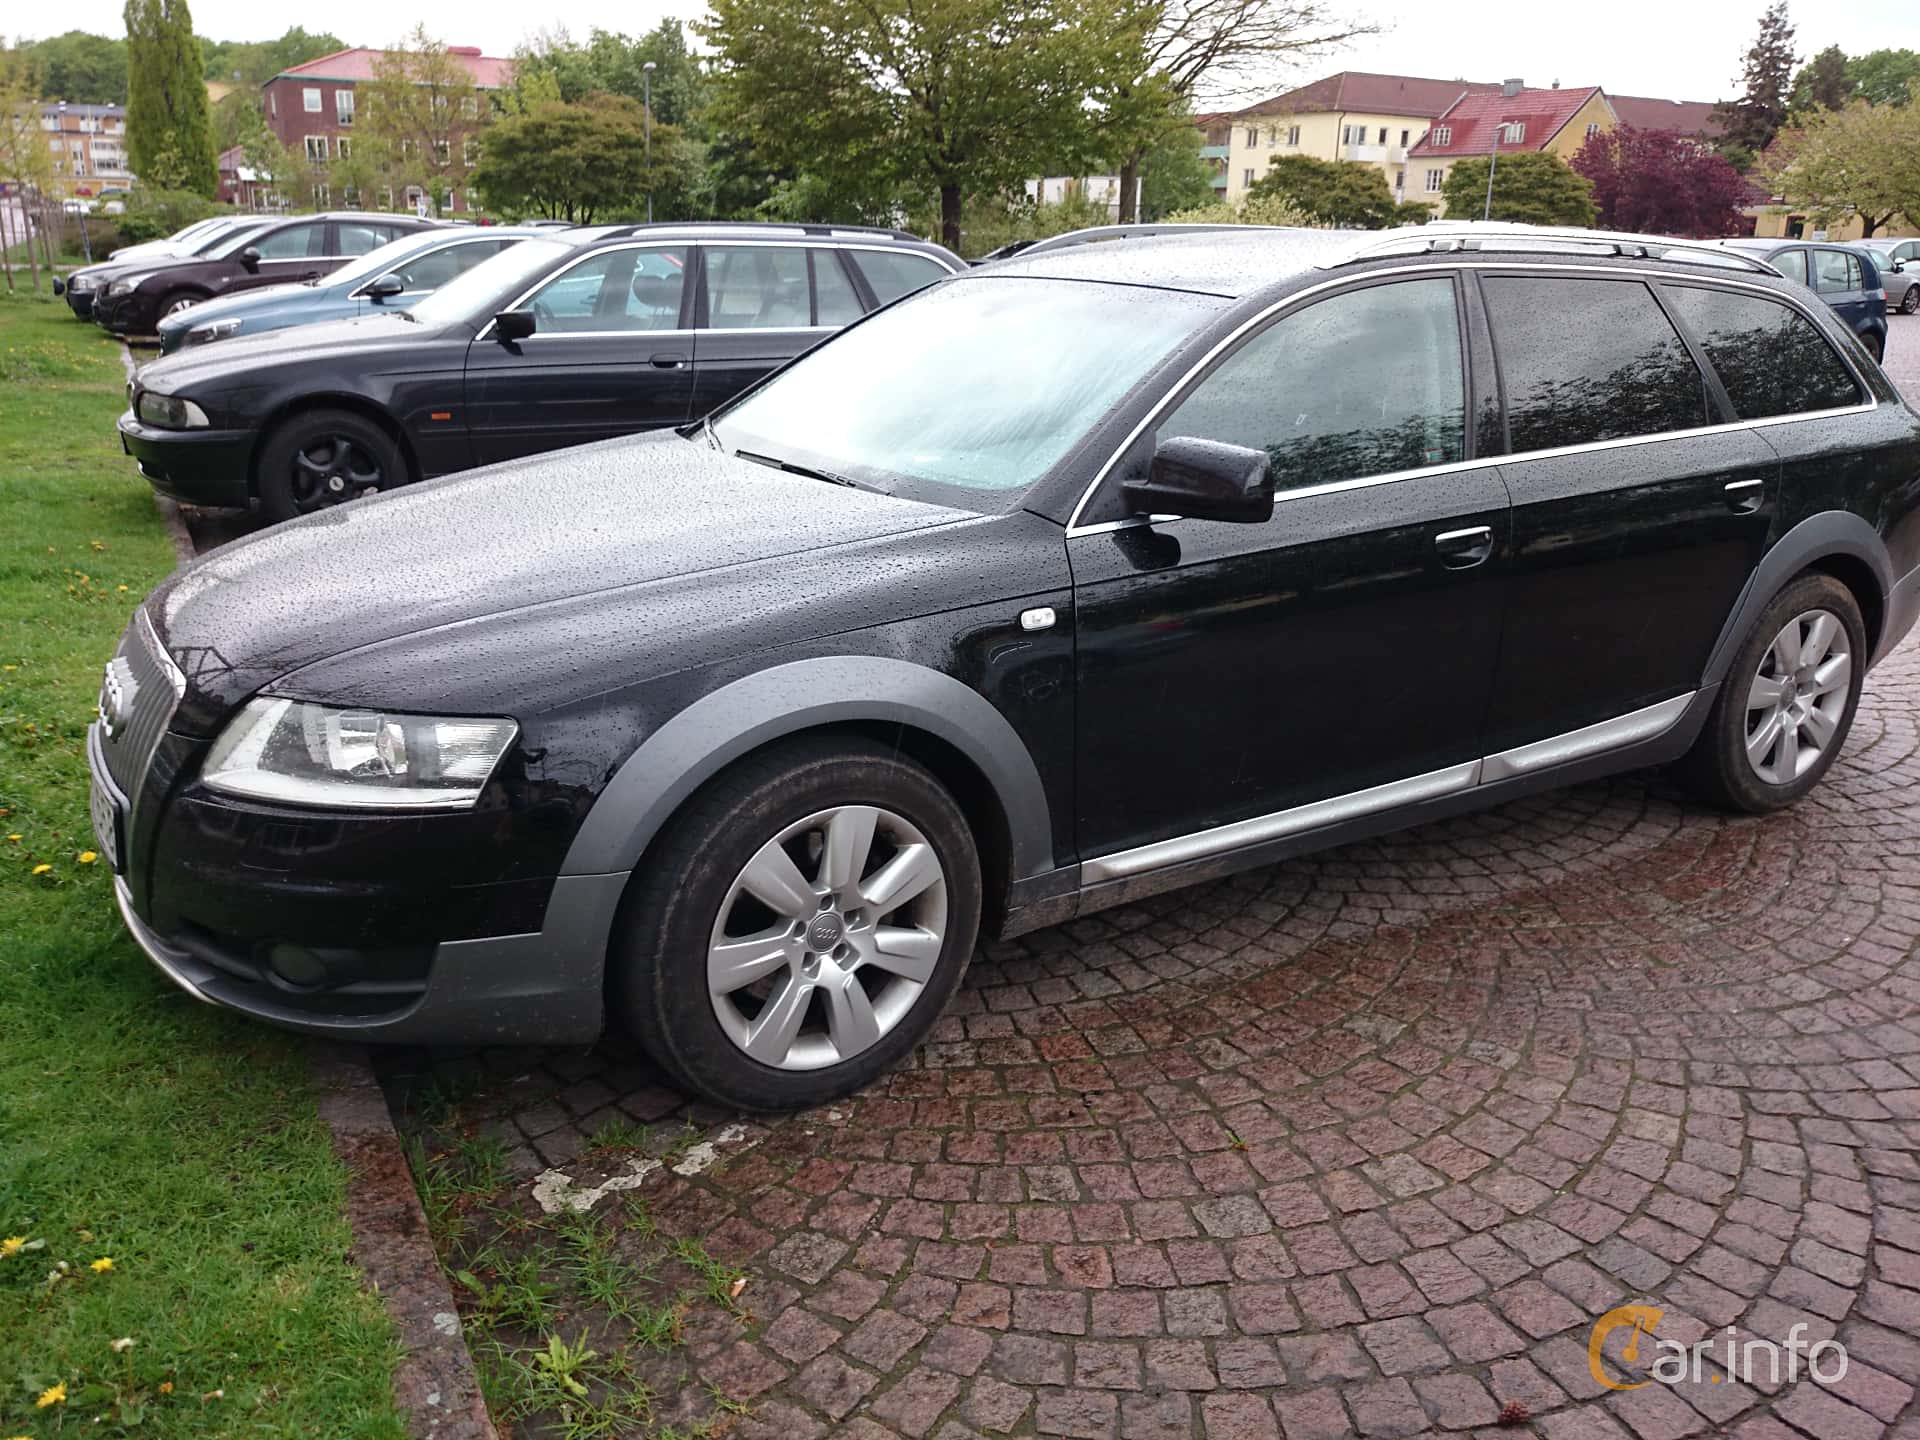 audi a6 allroad quattro generation c6 3 0 tdi v6 quattro. Black Bedroom Furniture Sets. Home Design Ideas